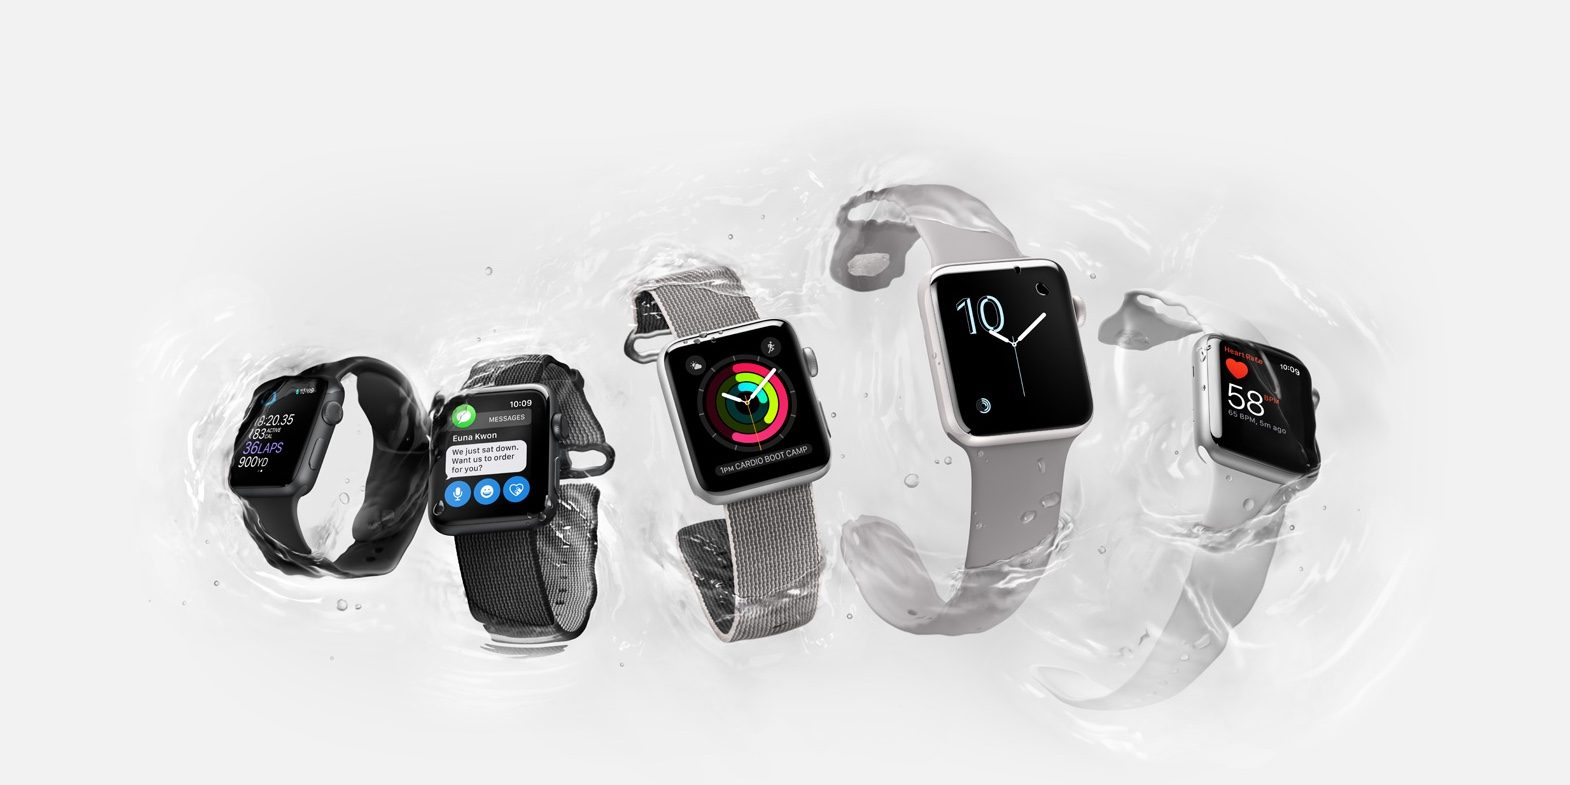 Aetna's New Health & Wellness Move Includes the Apple Watch